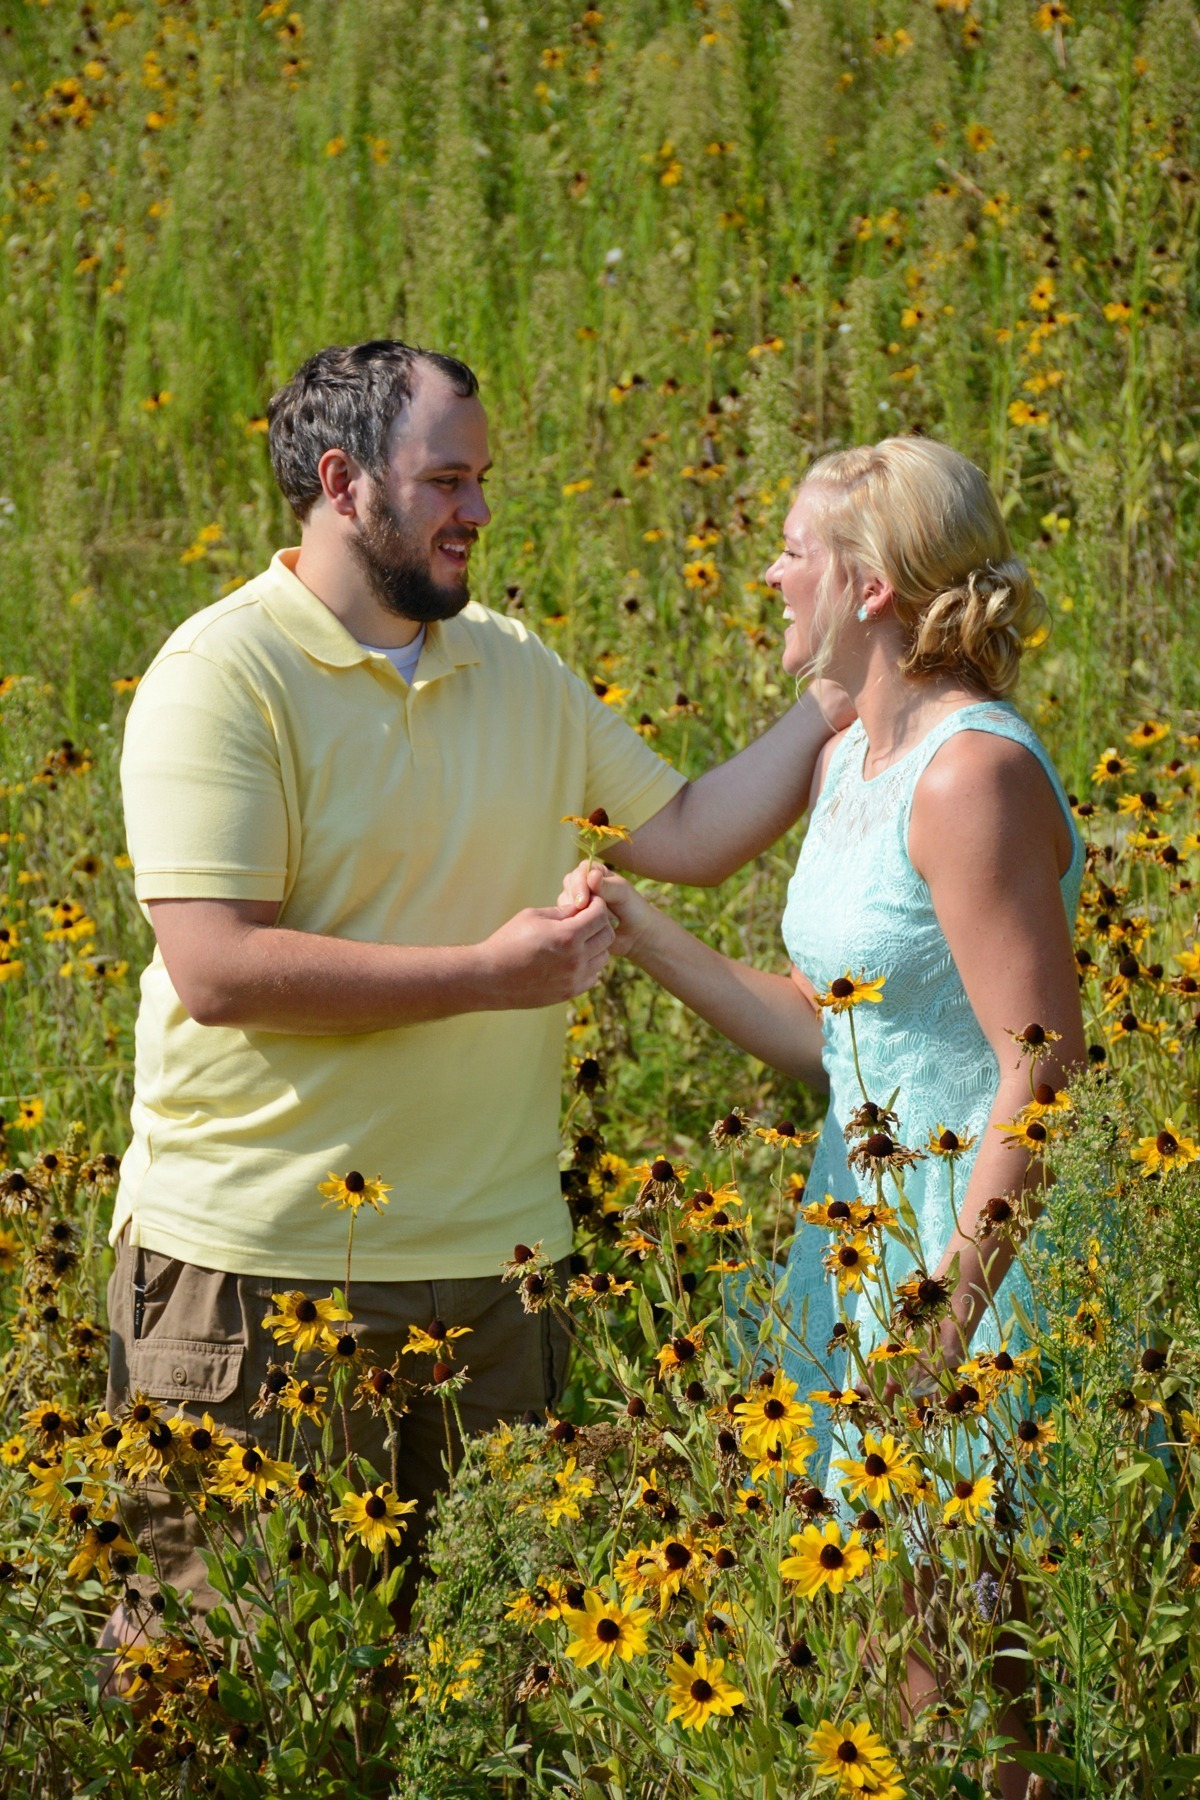 mazomanie dating site Personal ads for mazomanie, wi are a great way to find a life partner, movie date, or a quick hookup personals are for people local to mazomanie, wi and are for ages 18+ of either sex.